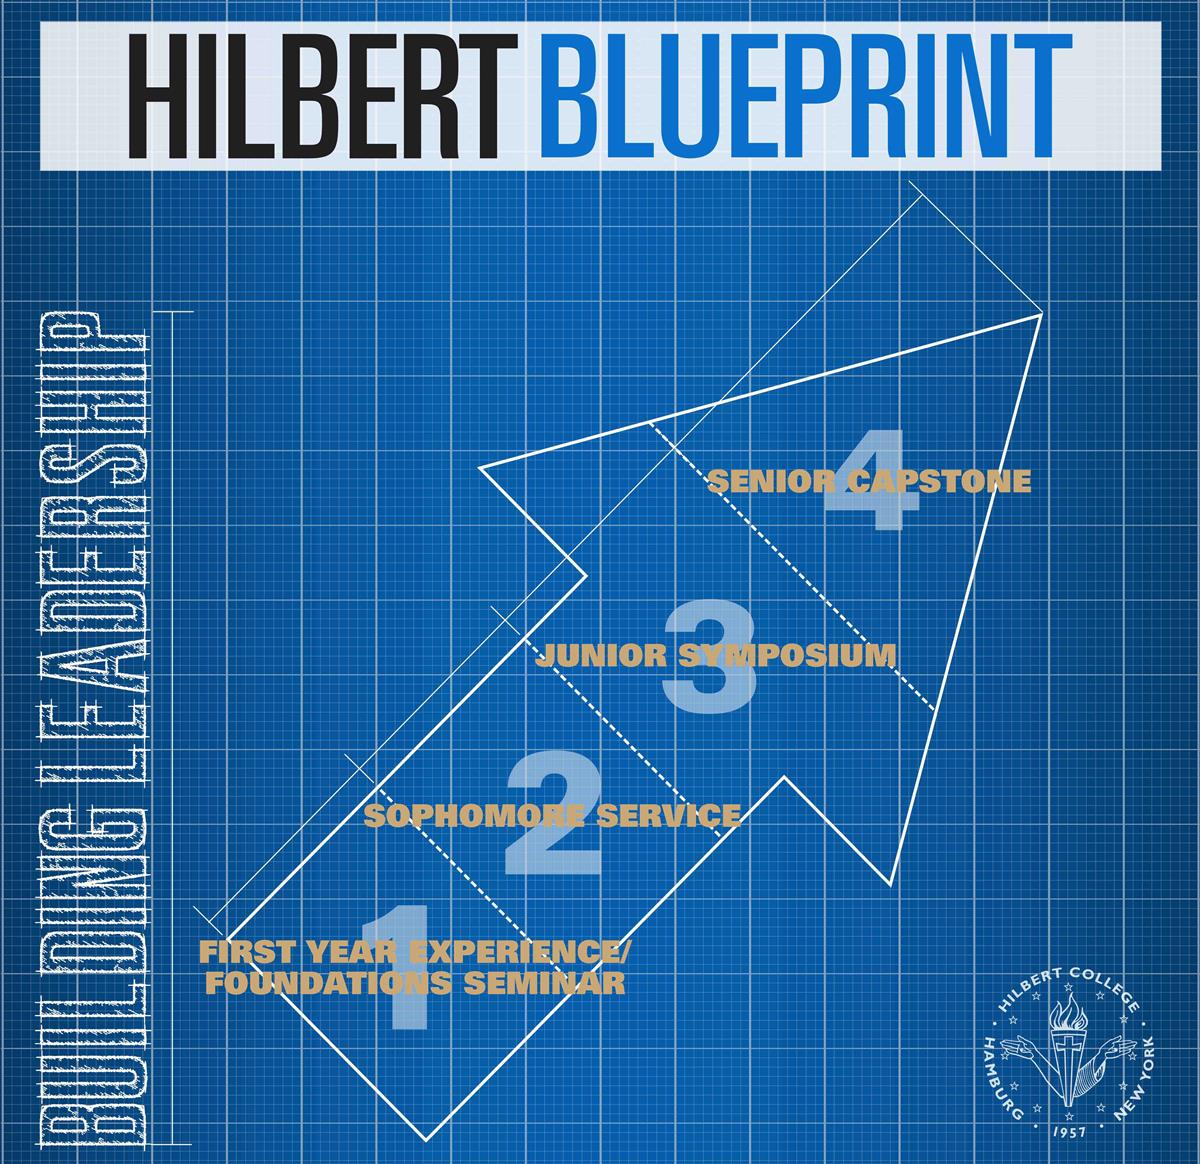 Hilbert blueprint hilbert college hilbert blueprint building leadership malvernweather